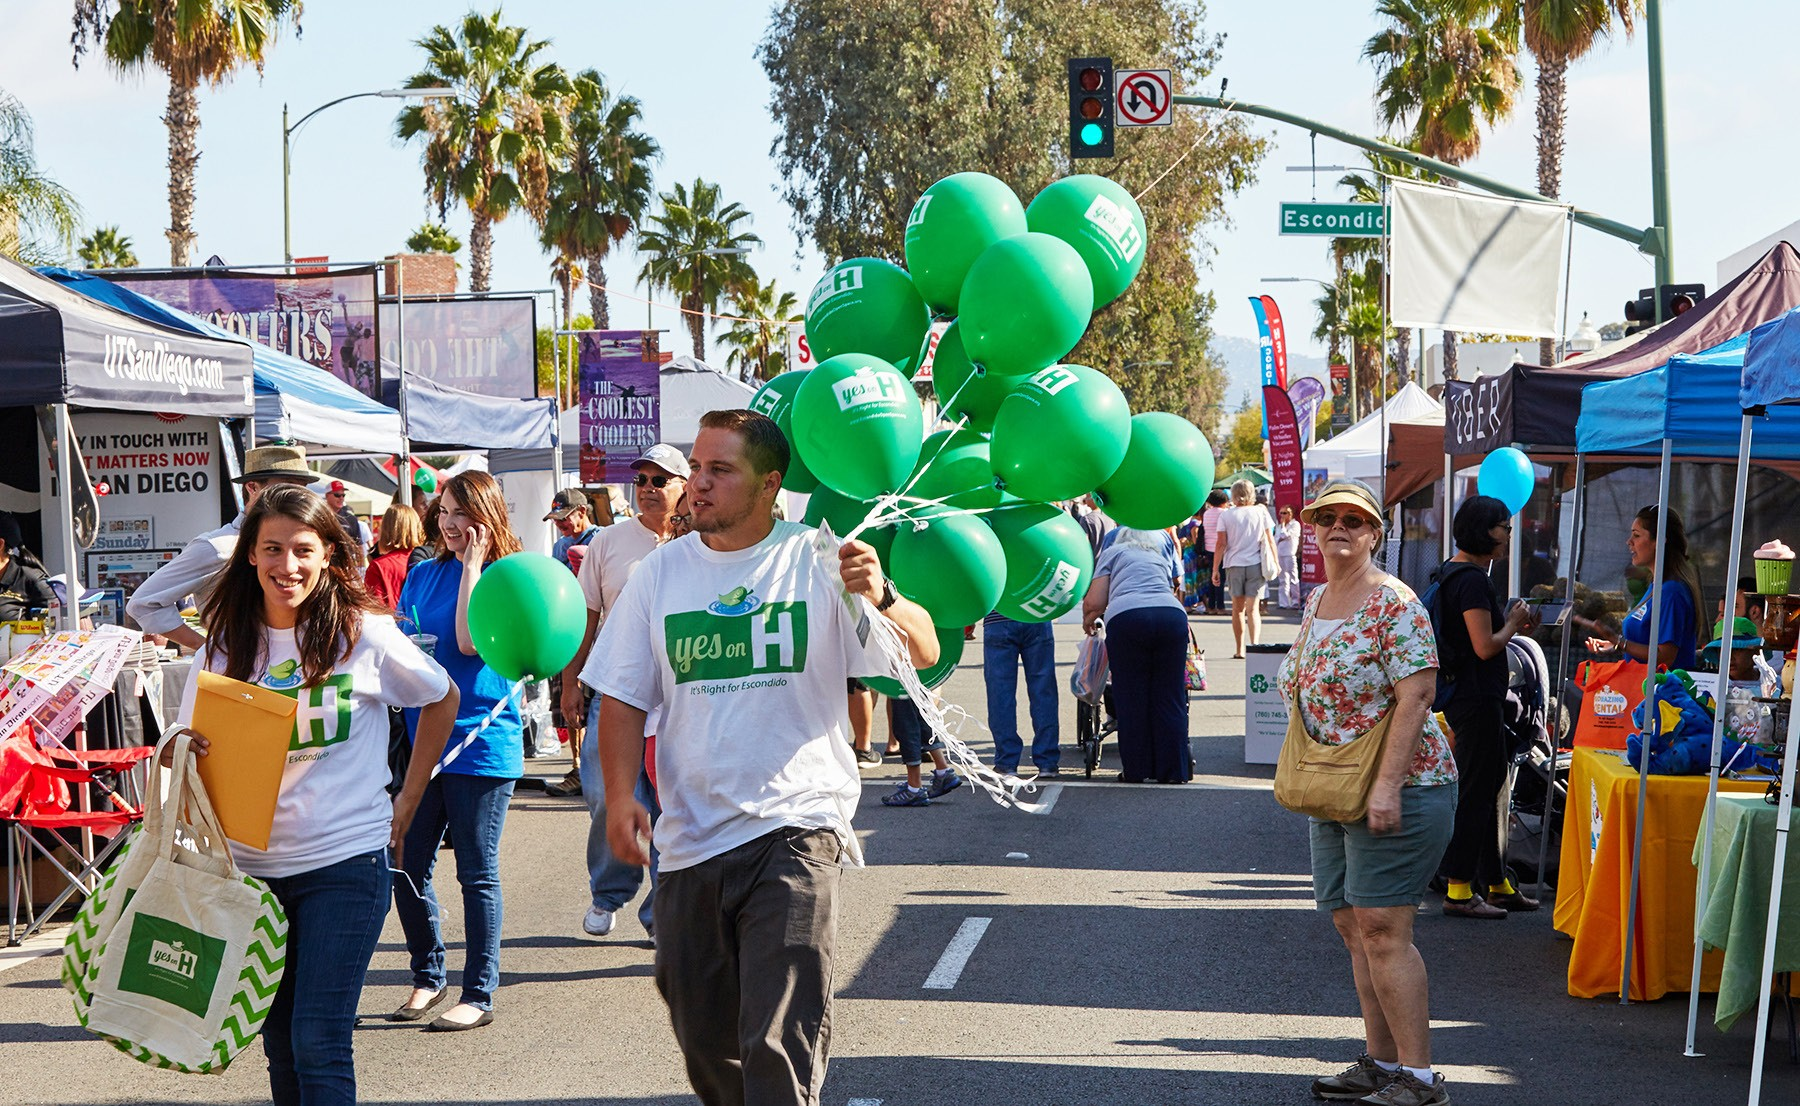 Last year's Grand Avenue Festival and Street Fair attracted thousands of people to a multi-block area in downtown Escondido.